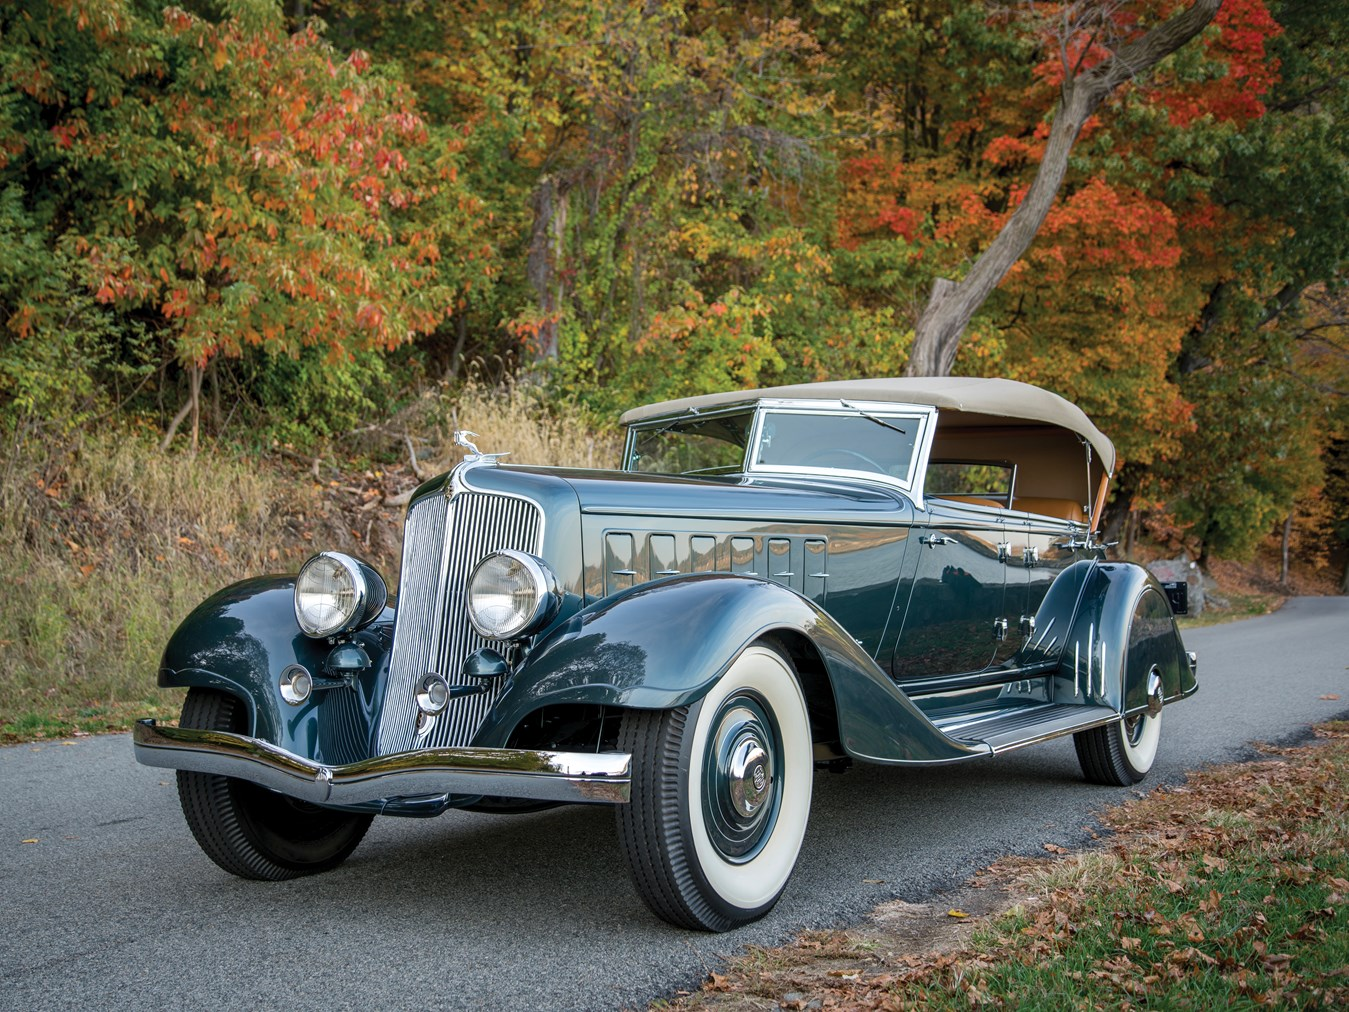 1933 Chrysler Custom Imperial Phaeton